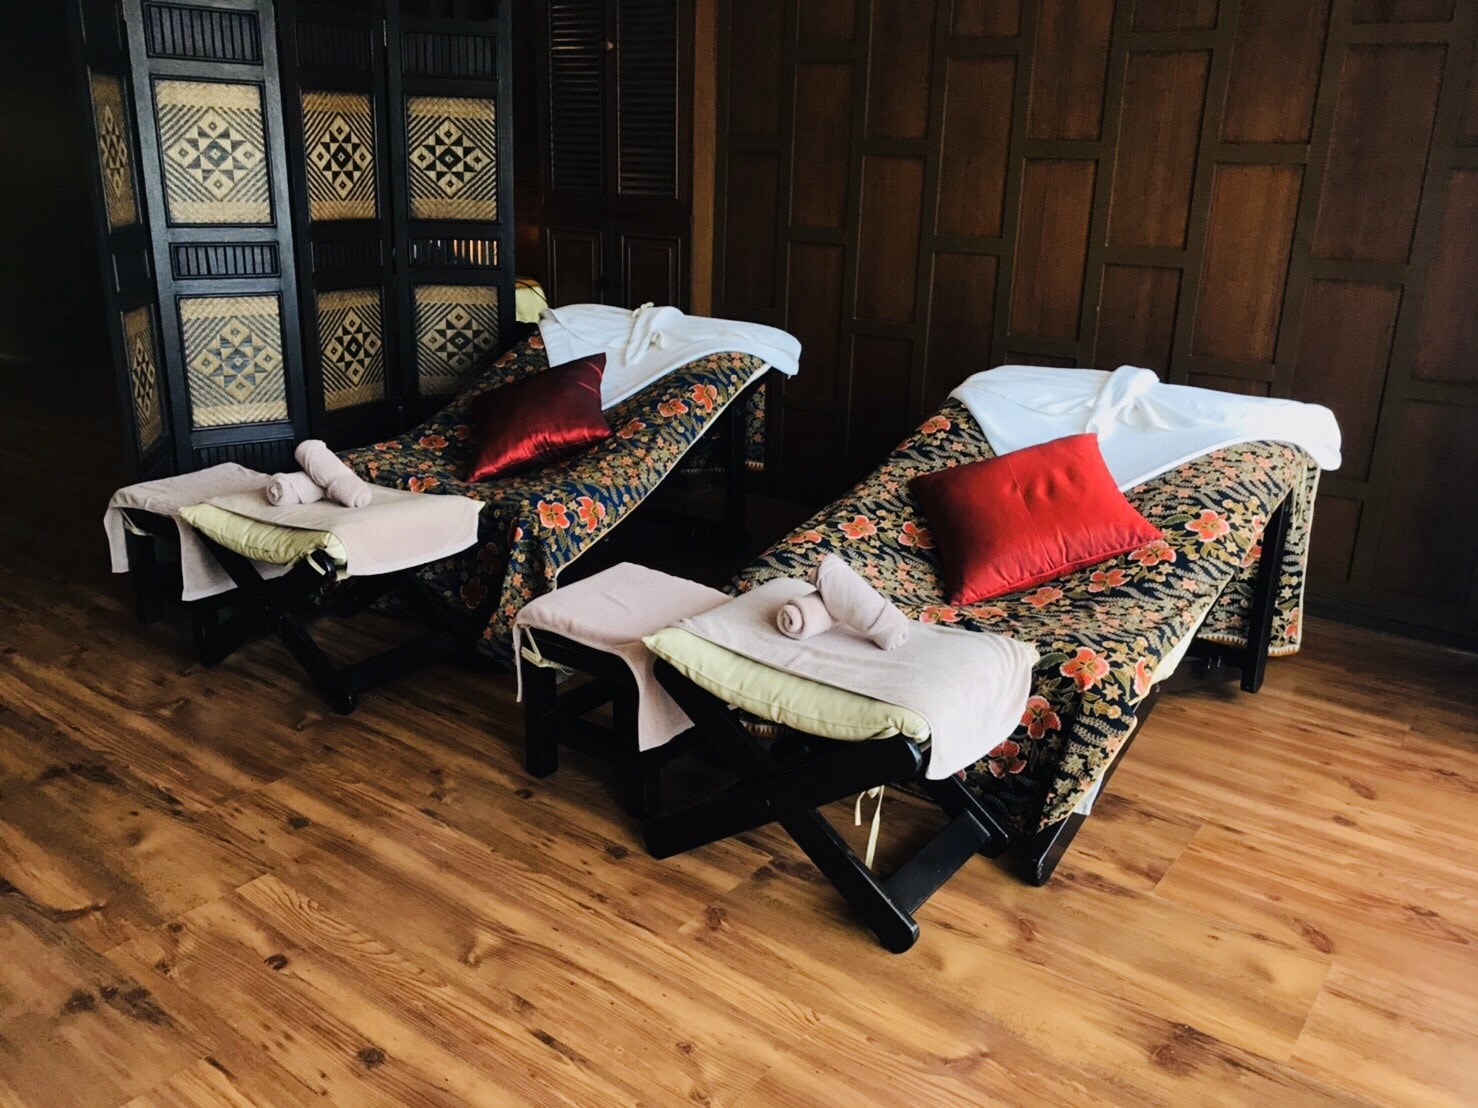 Reclining spa chairs in traditional Thai pattern.